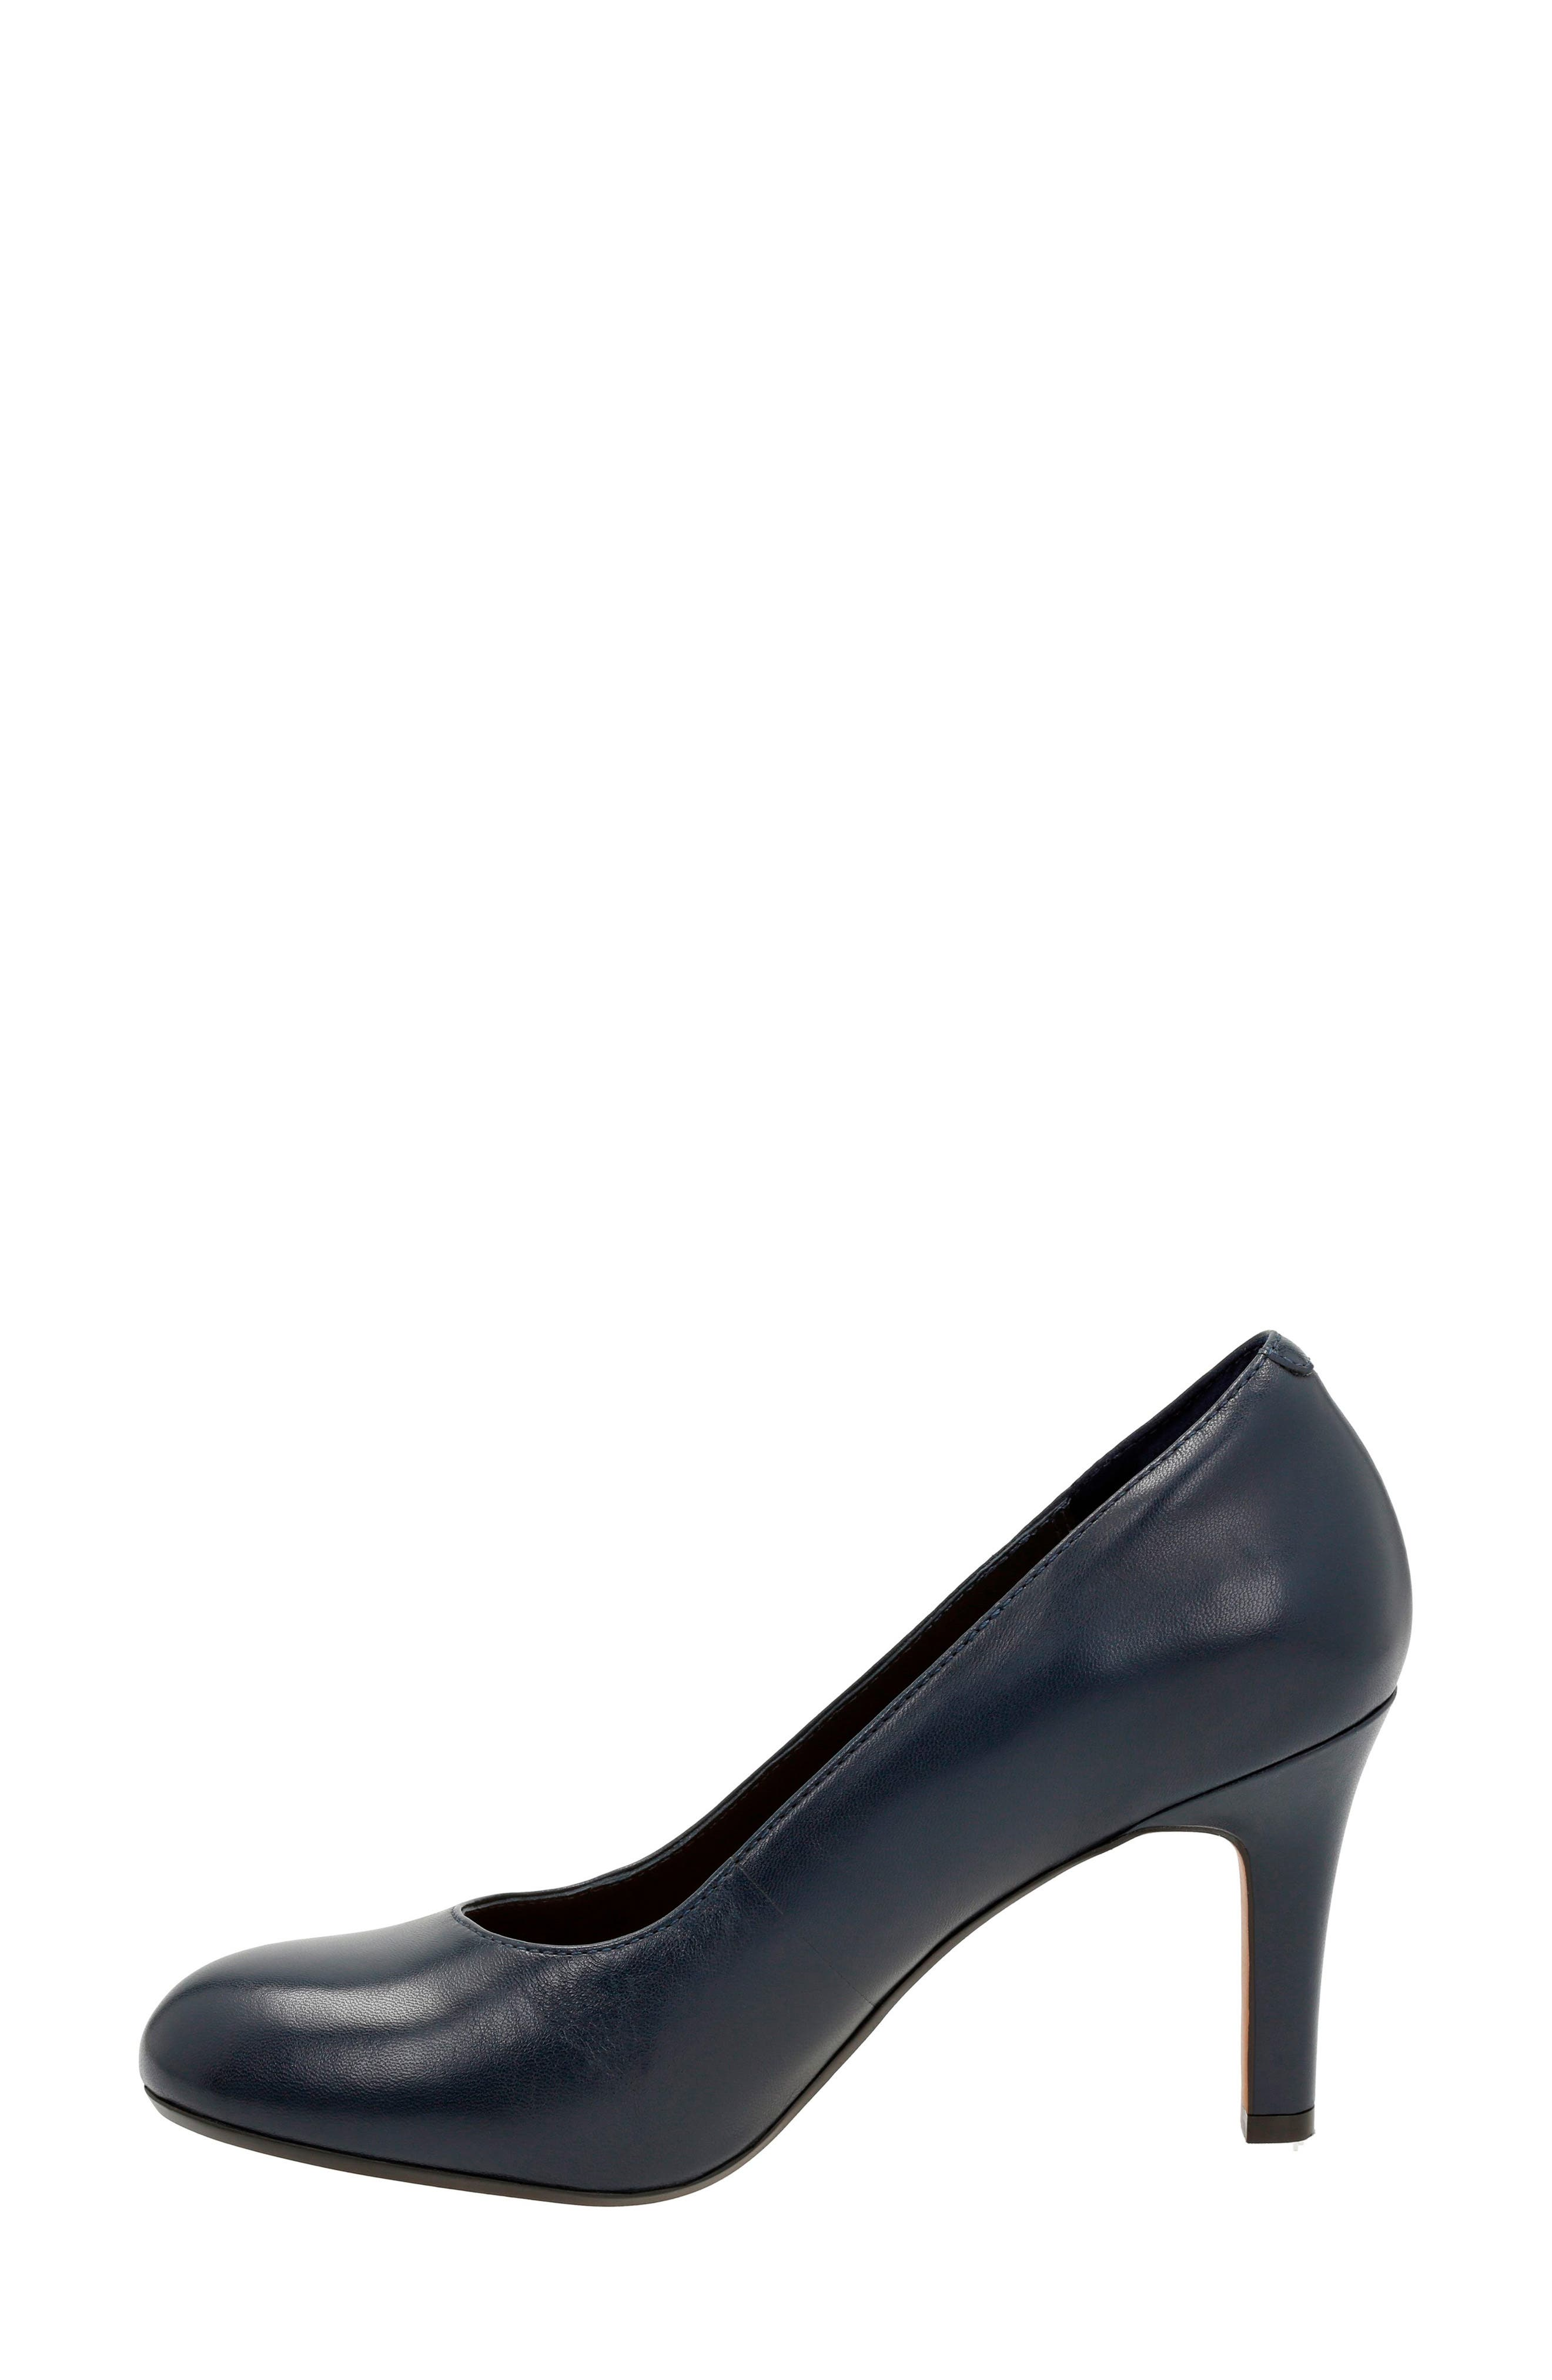 'Heavenly Star' Pump,                             Alternate thumbnail 2, color,                             Navy Leather